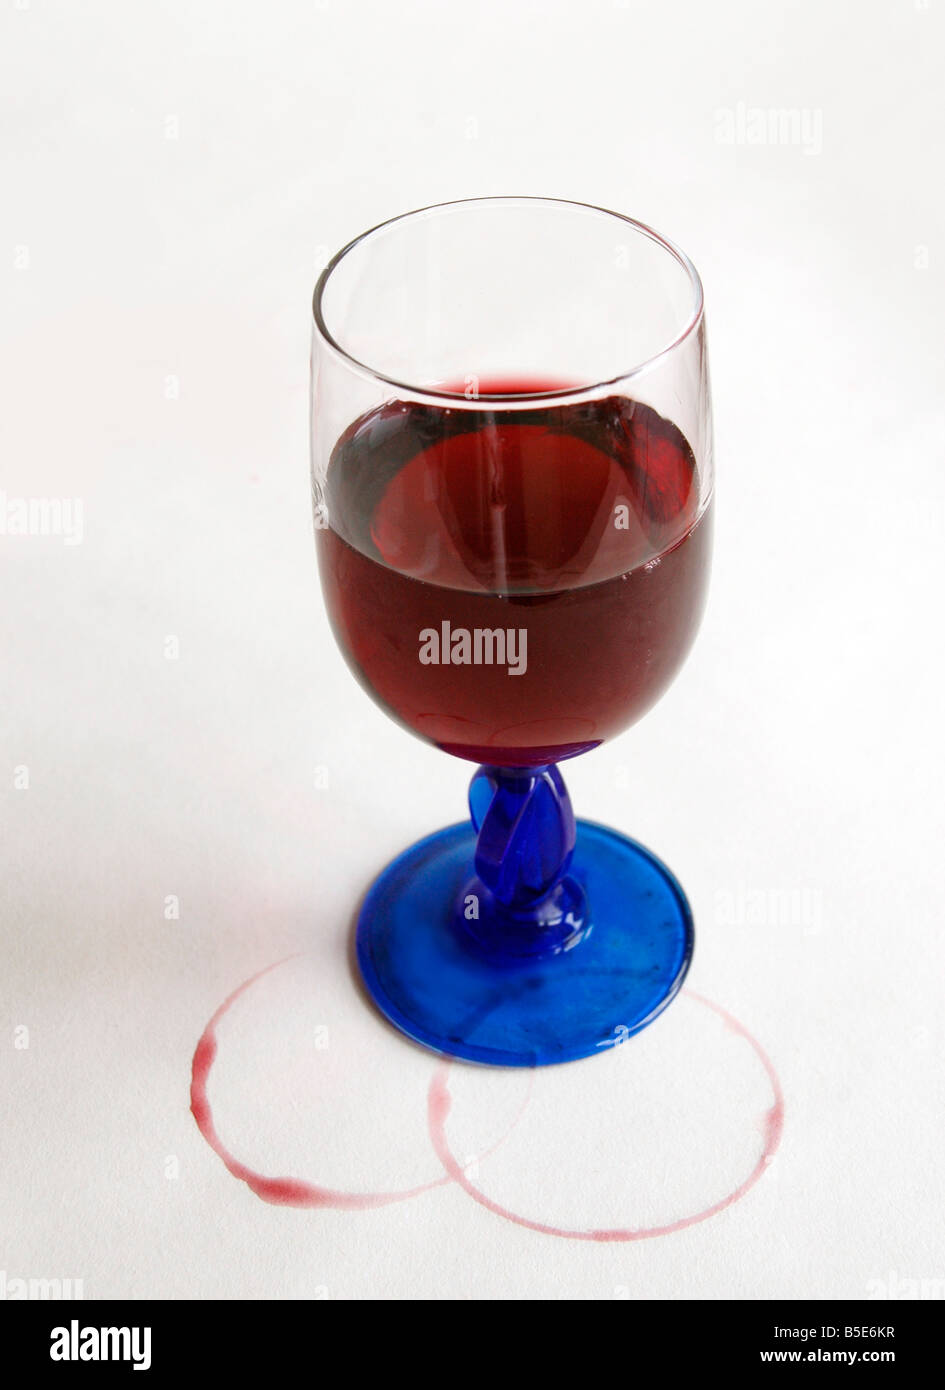 A glass of wine with stains of wine rings on the white table spread. - Stock Image